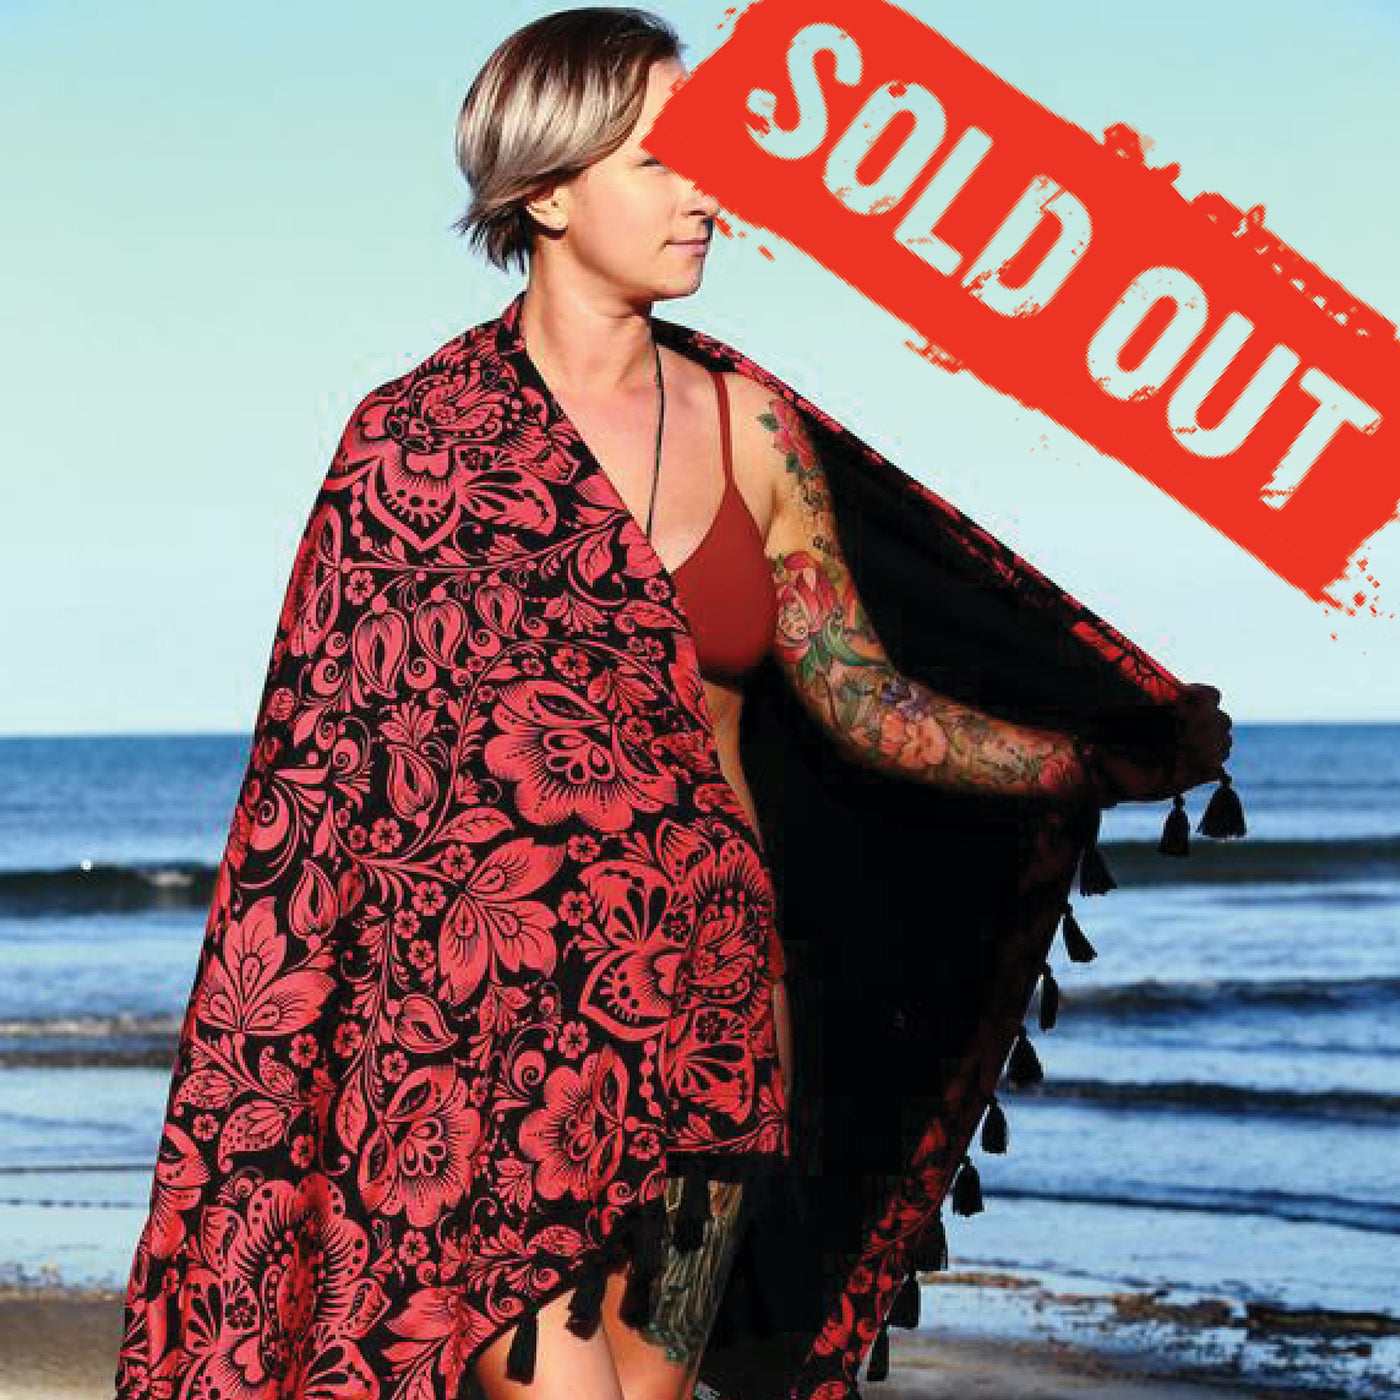 Russian Doll Towel (with tassels) - SOLD OUT